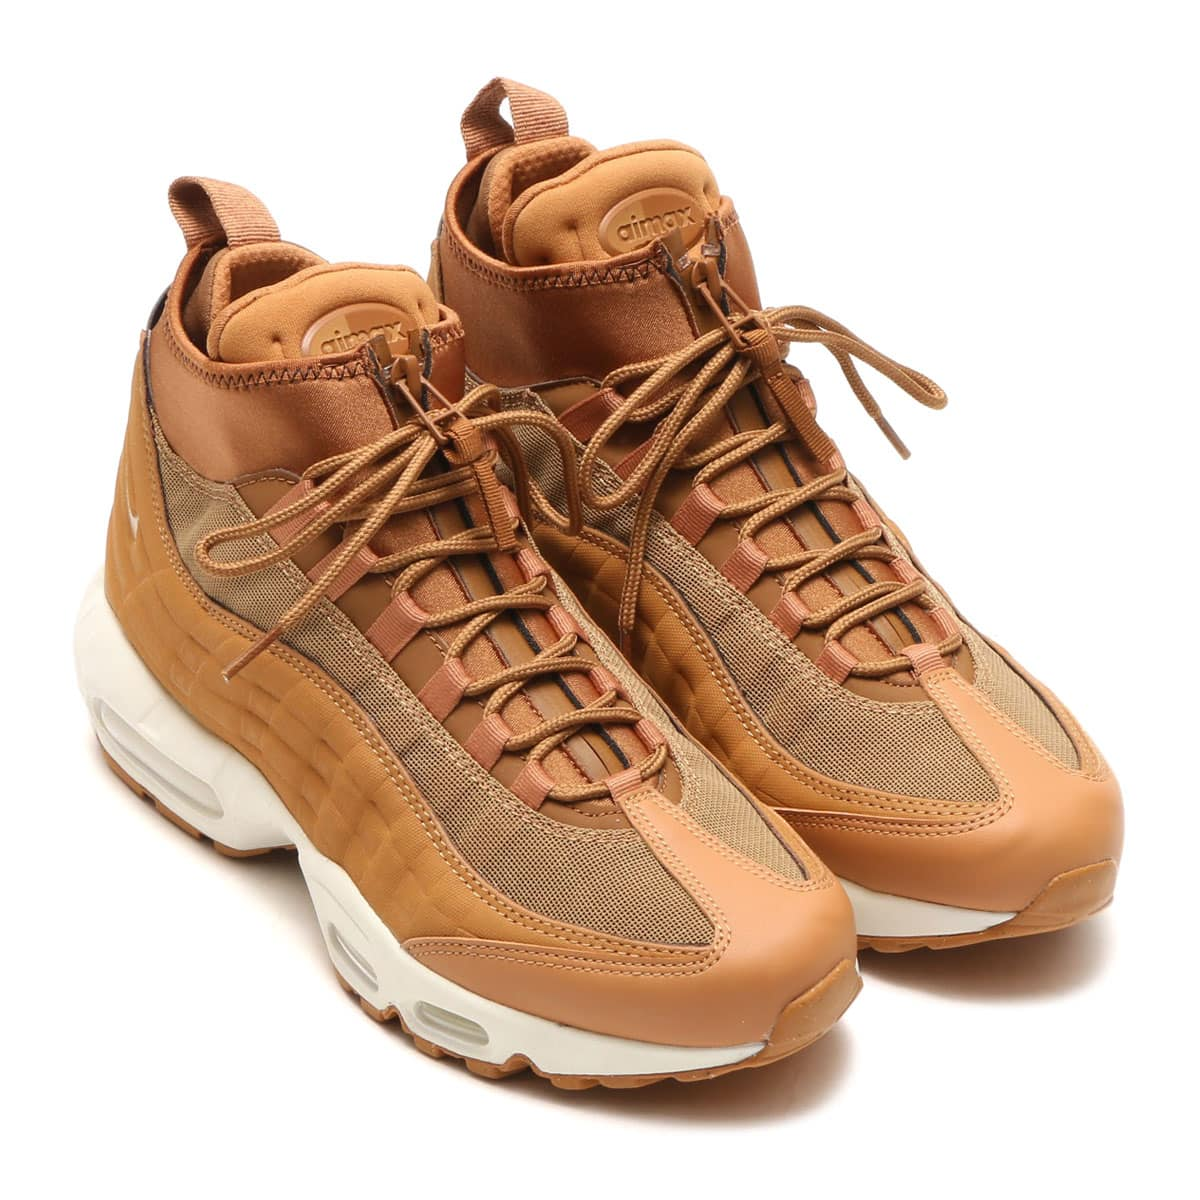 NIKE AIR MAX 95 SNEAKERBOOT FLAX/FLAX-ALE BROWN-SAIL_photo_large